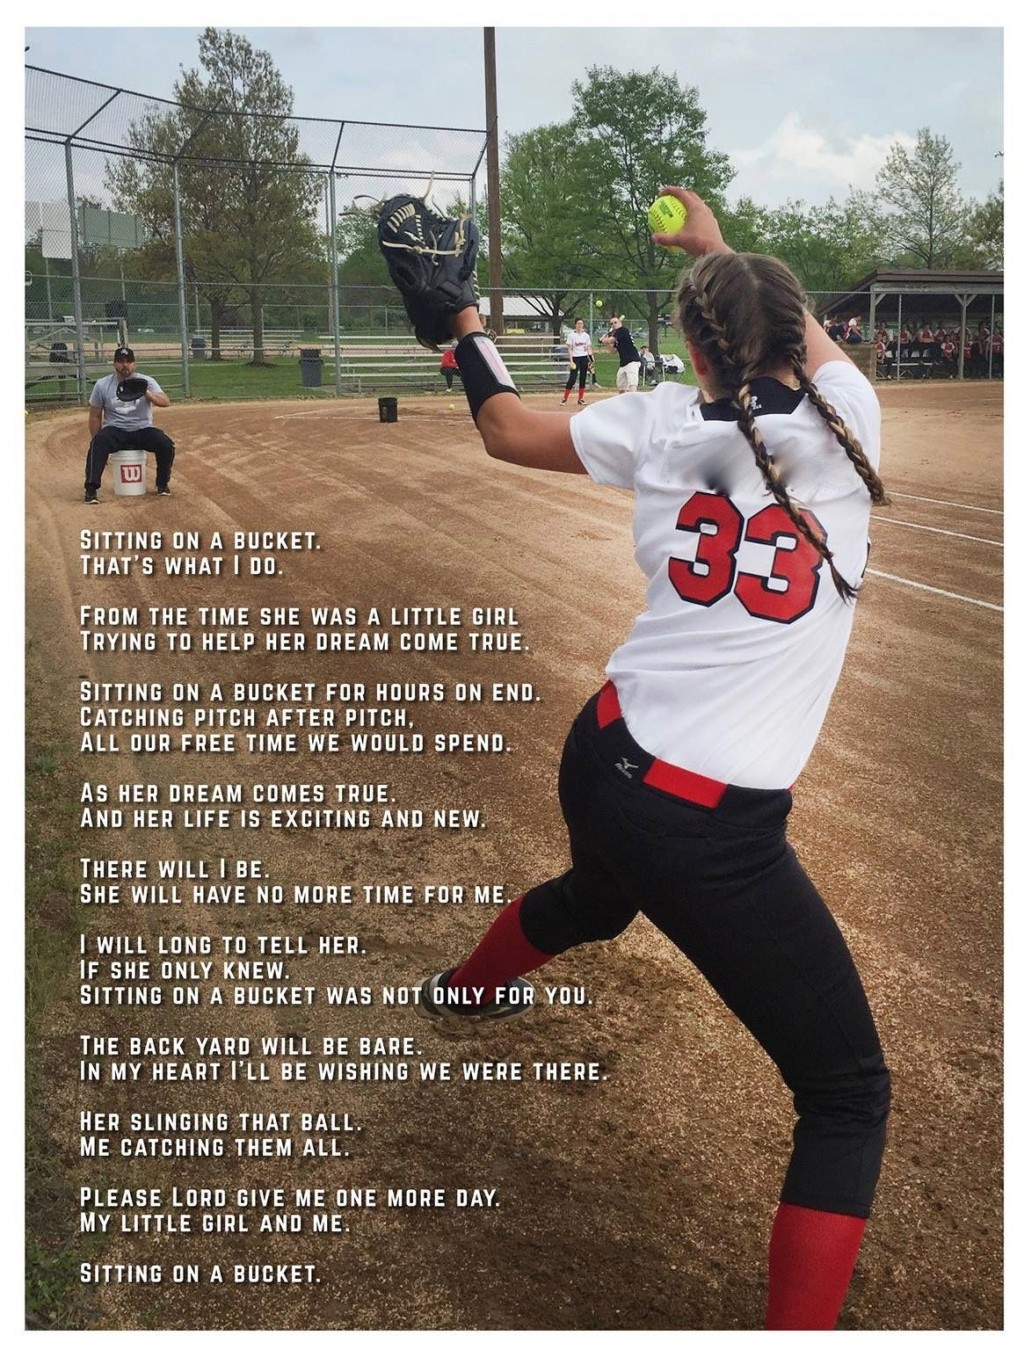 001 Why I Love Softball Essay Unforgettable Large